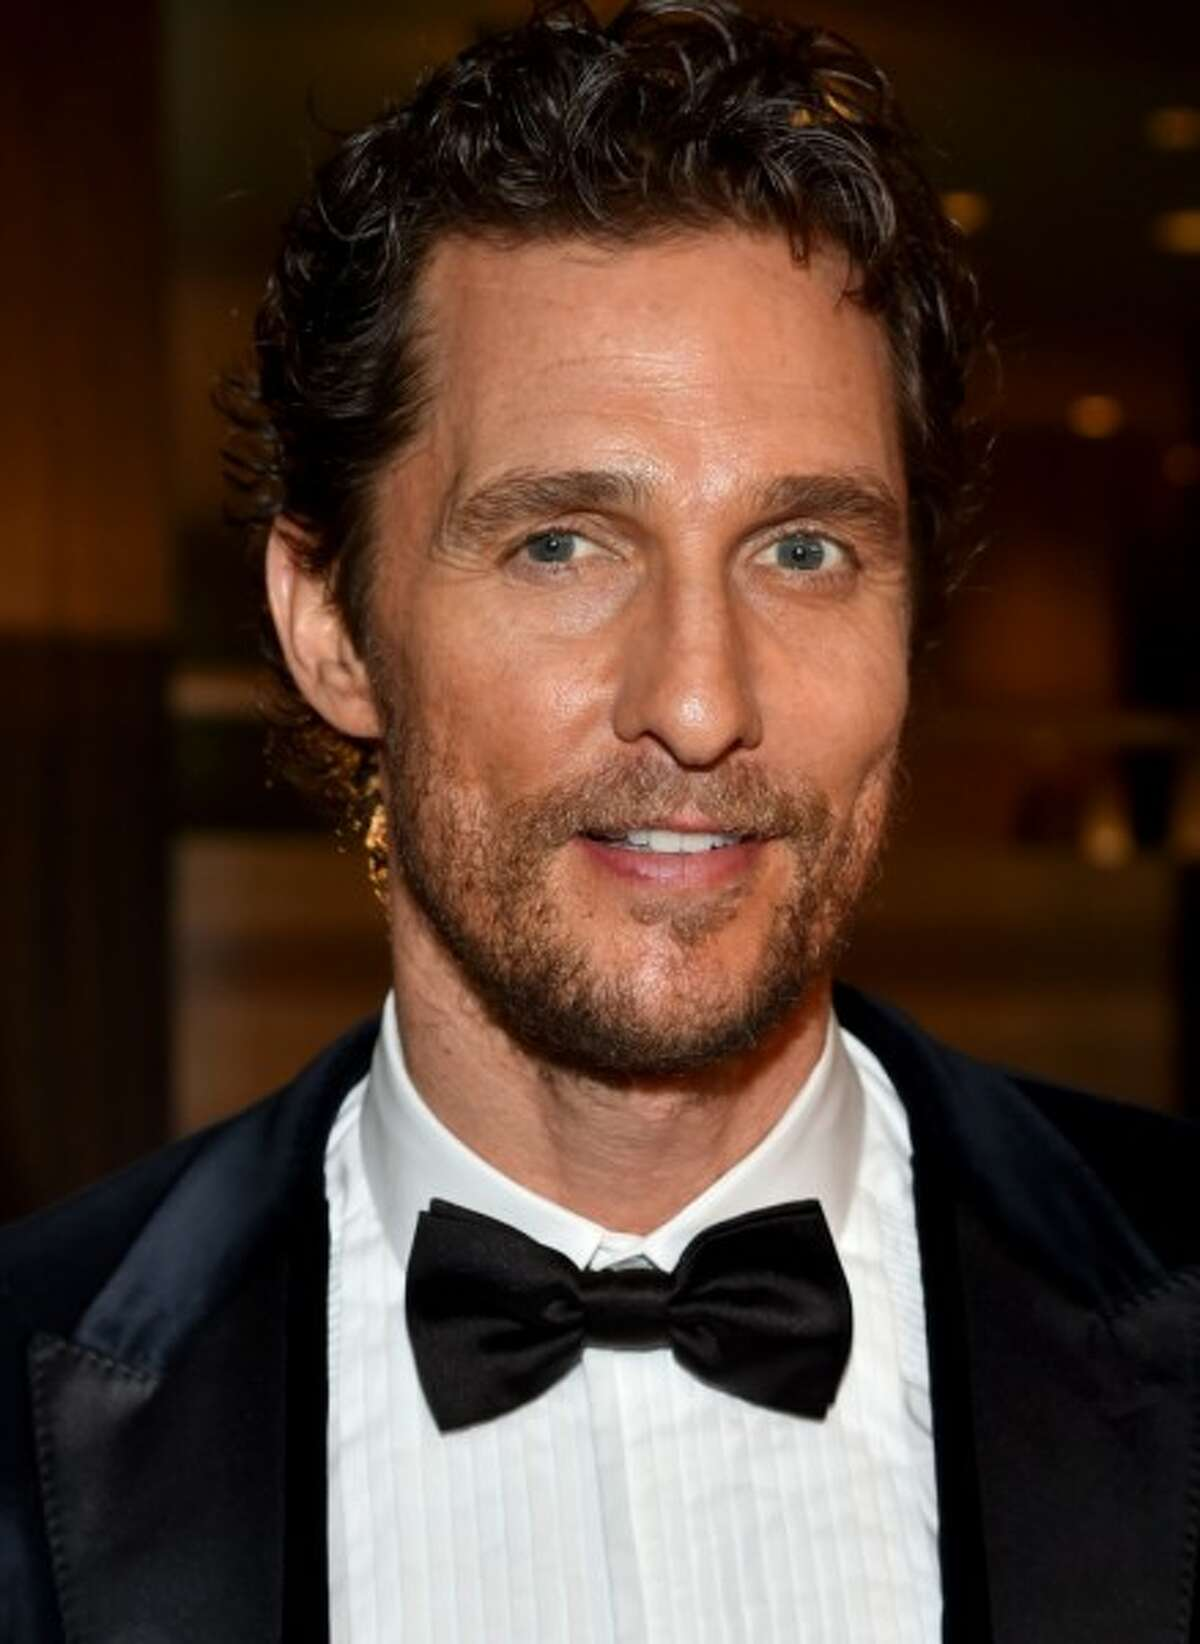 Matthew McConaughey What you'll need: Oscar statuette, folksy drawl, fluctuating weight (only for movie roles), manly musk